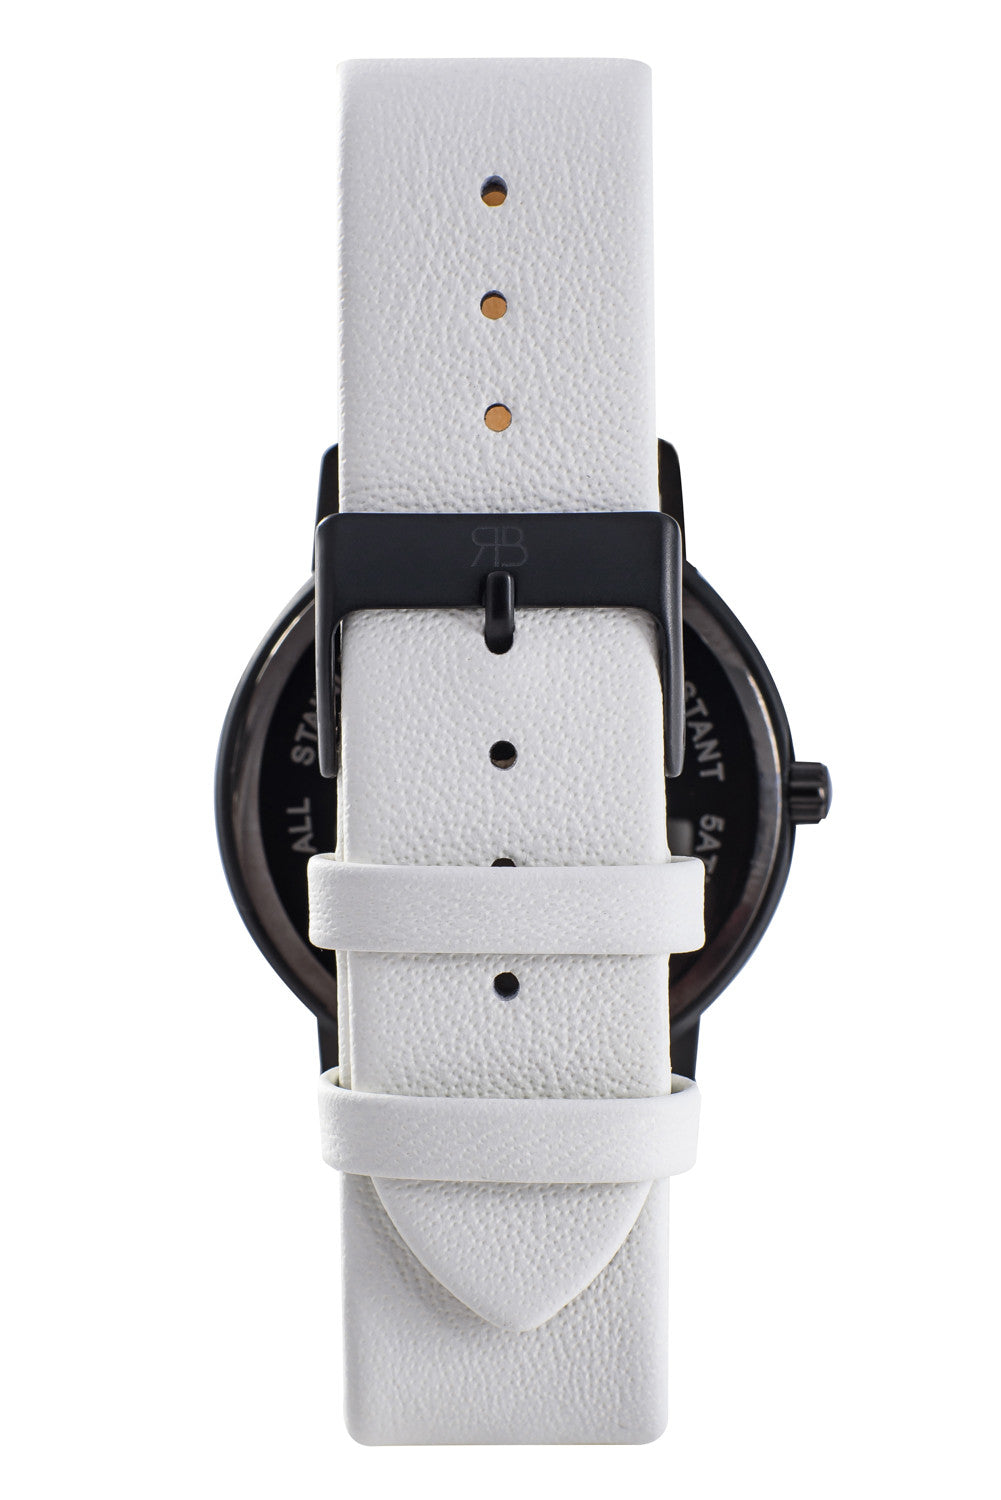 Matte black Rossbanna Cornice watch with white strap, minimal, elegant, timeless, unique timepiece 05